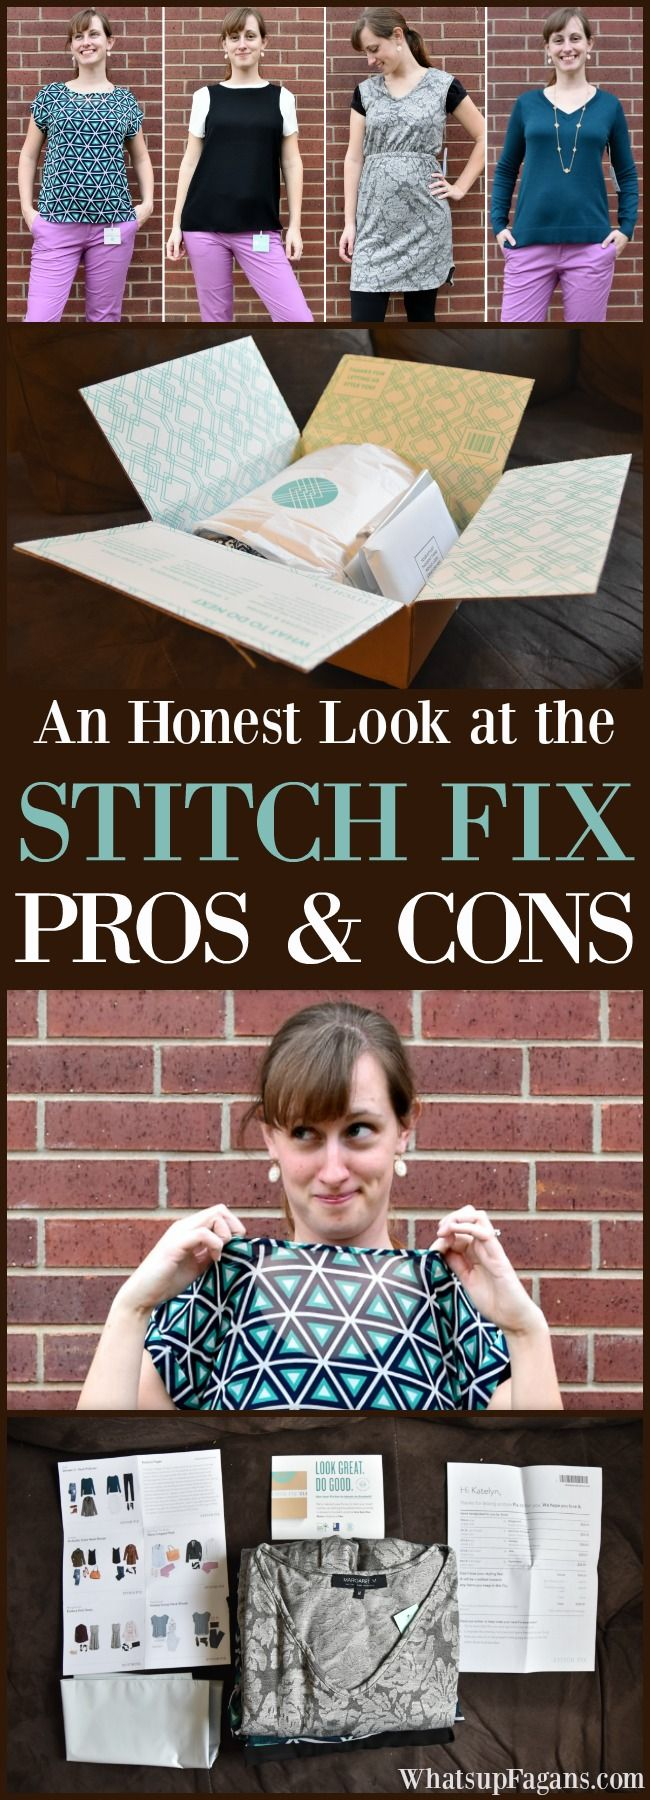 Stitch Fix Pros and Cons | Stitch Fix Cost | Stitch Fix Negative Review | Stitch Fix Positive Review | Bad Review | Honest Review | Clothing Subscription box | Fashion | Style | Personal Stylist | Trends | Wardrobe | Examples | Unboxing